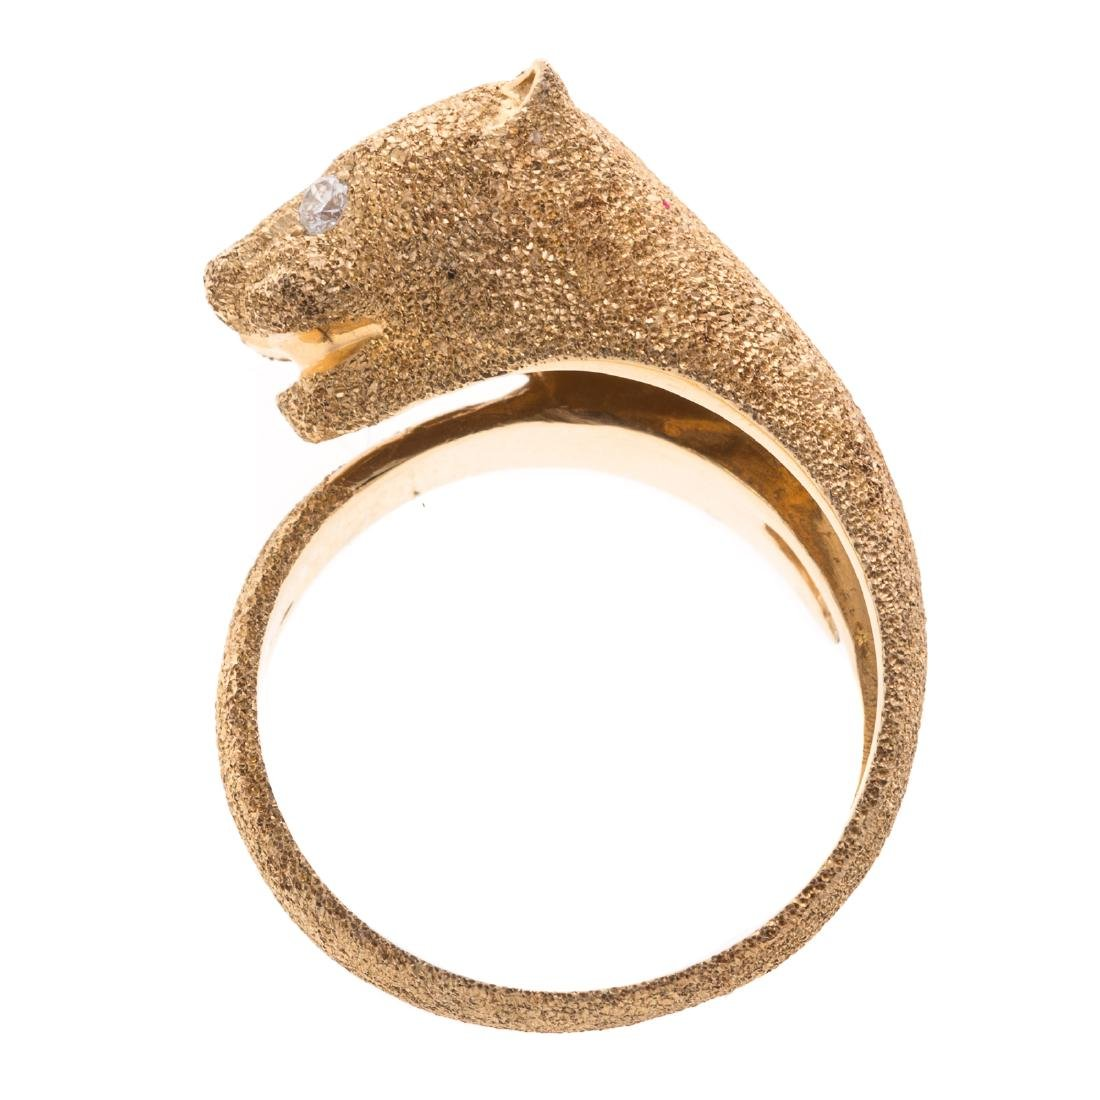 A Lady's 14K Panther Ring with Diamond Eyes - 3